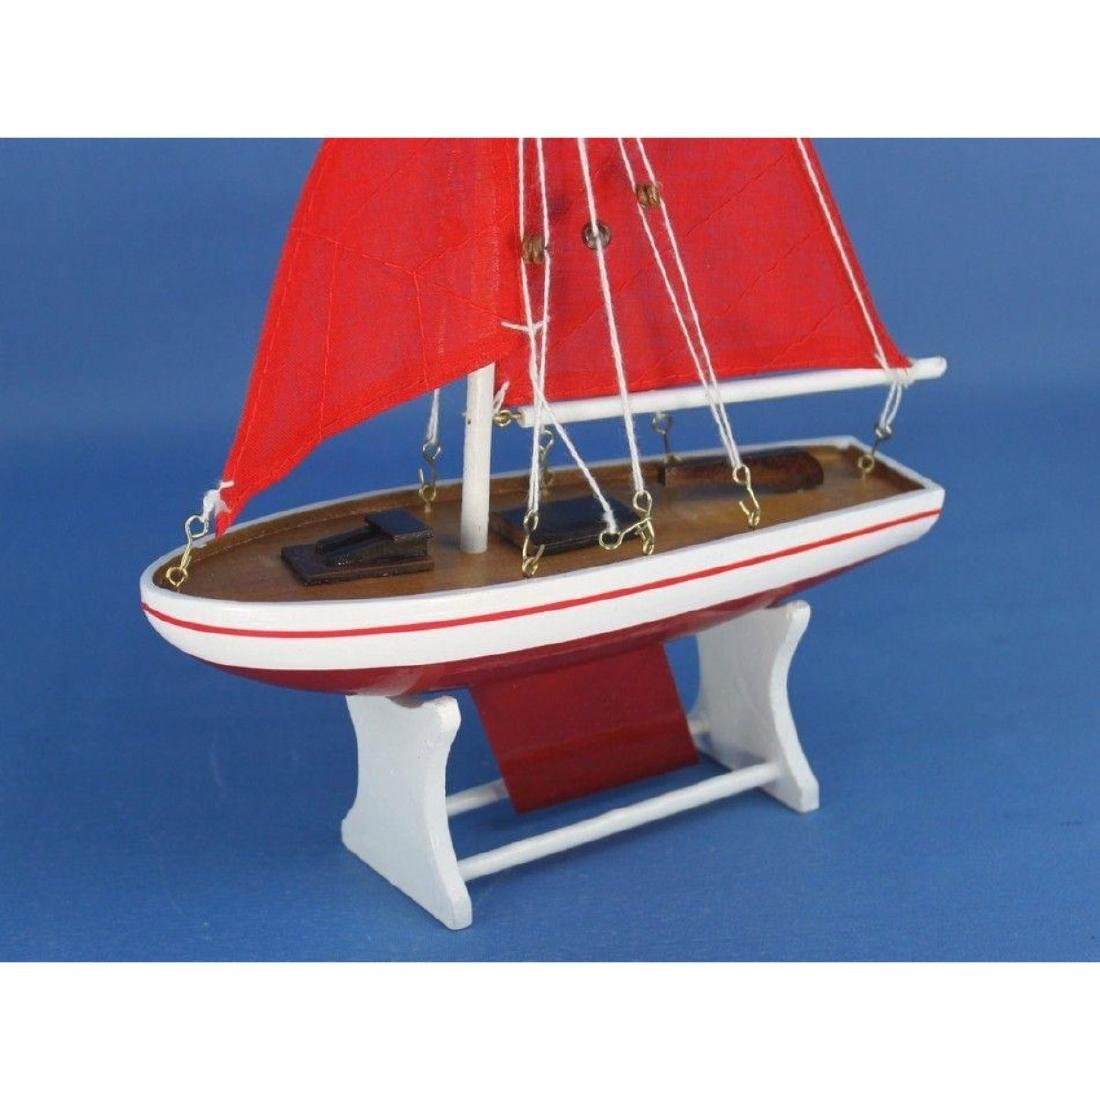 "Wooden It Floats 12"" - Red with Red Sails Floating - 5"